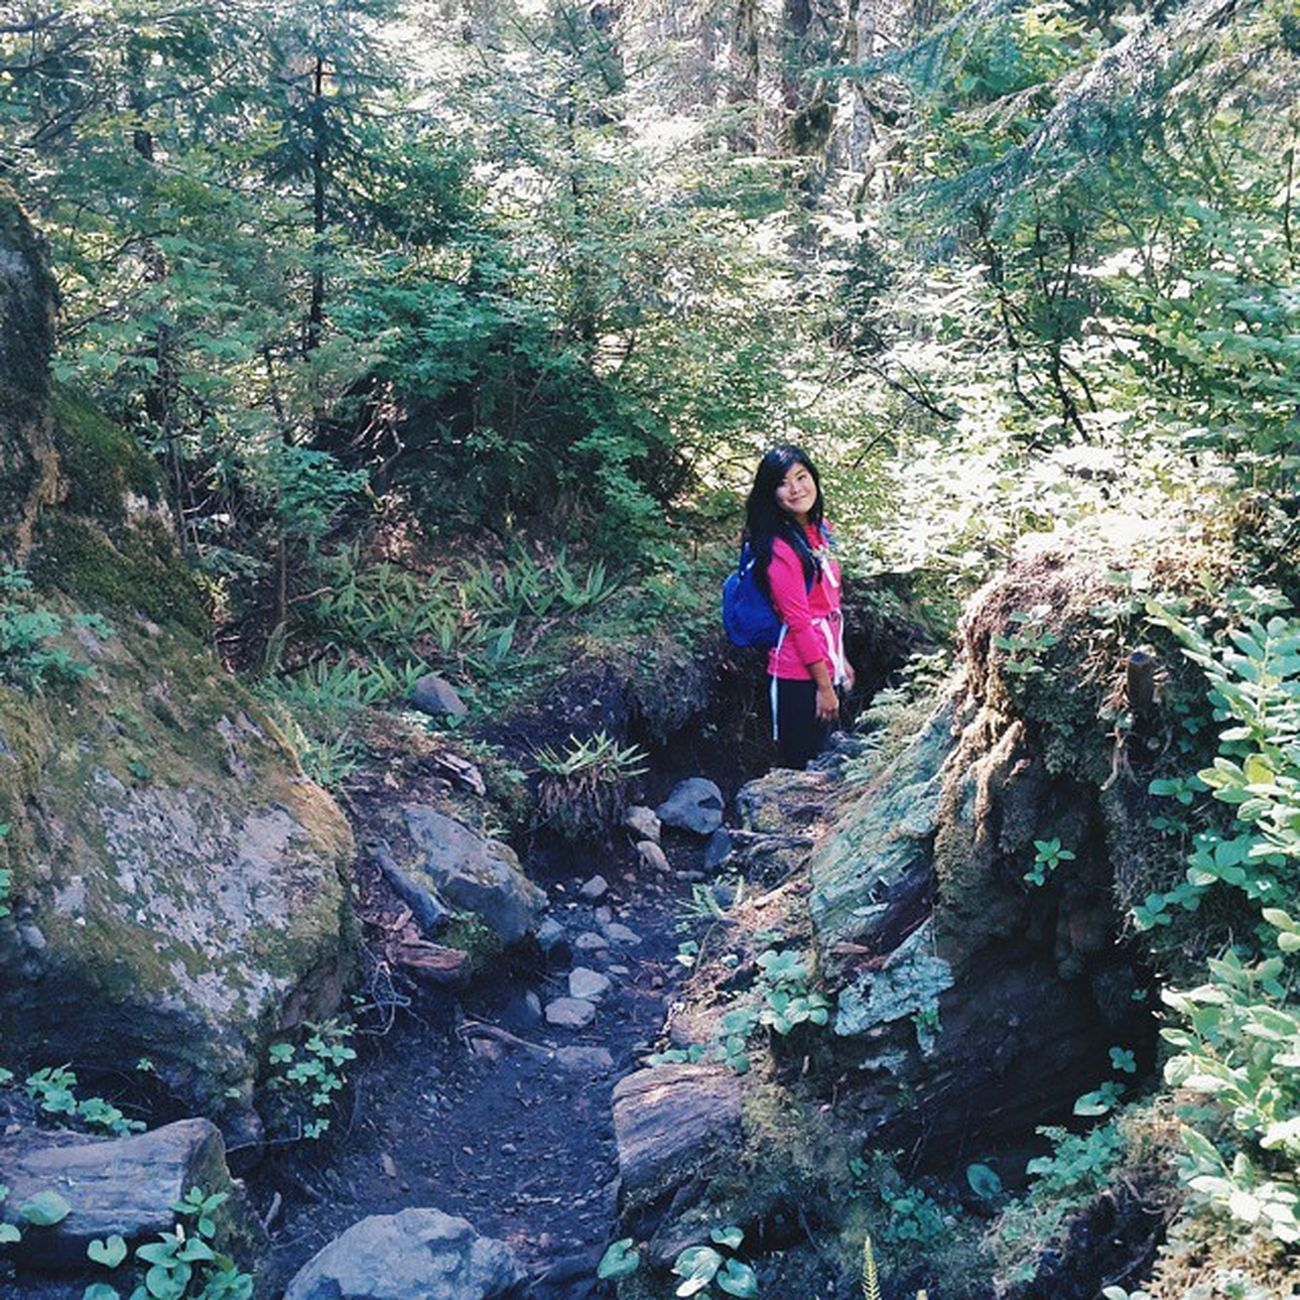 my neon hiking buddy || Vscocam Hikingpnw Hiking Heatherlake naturelovers